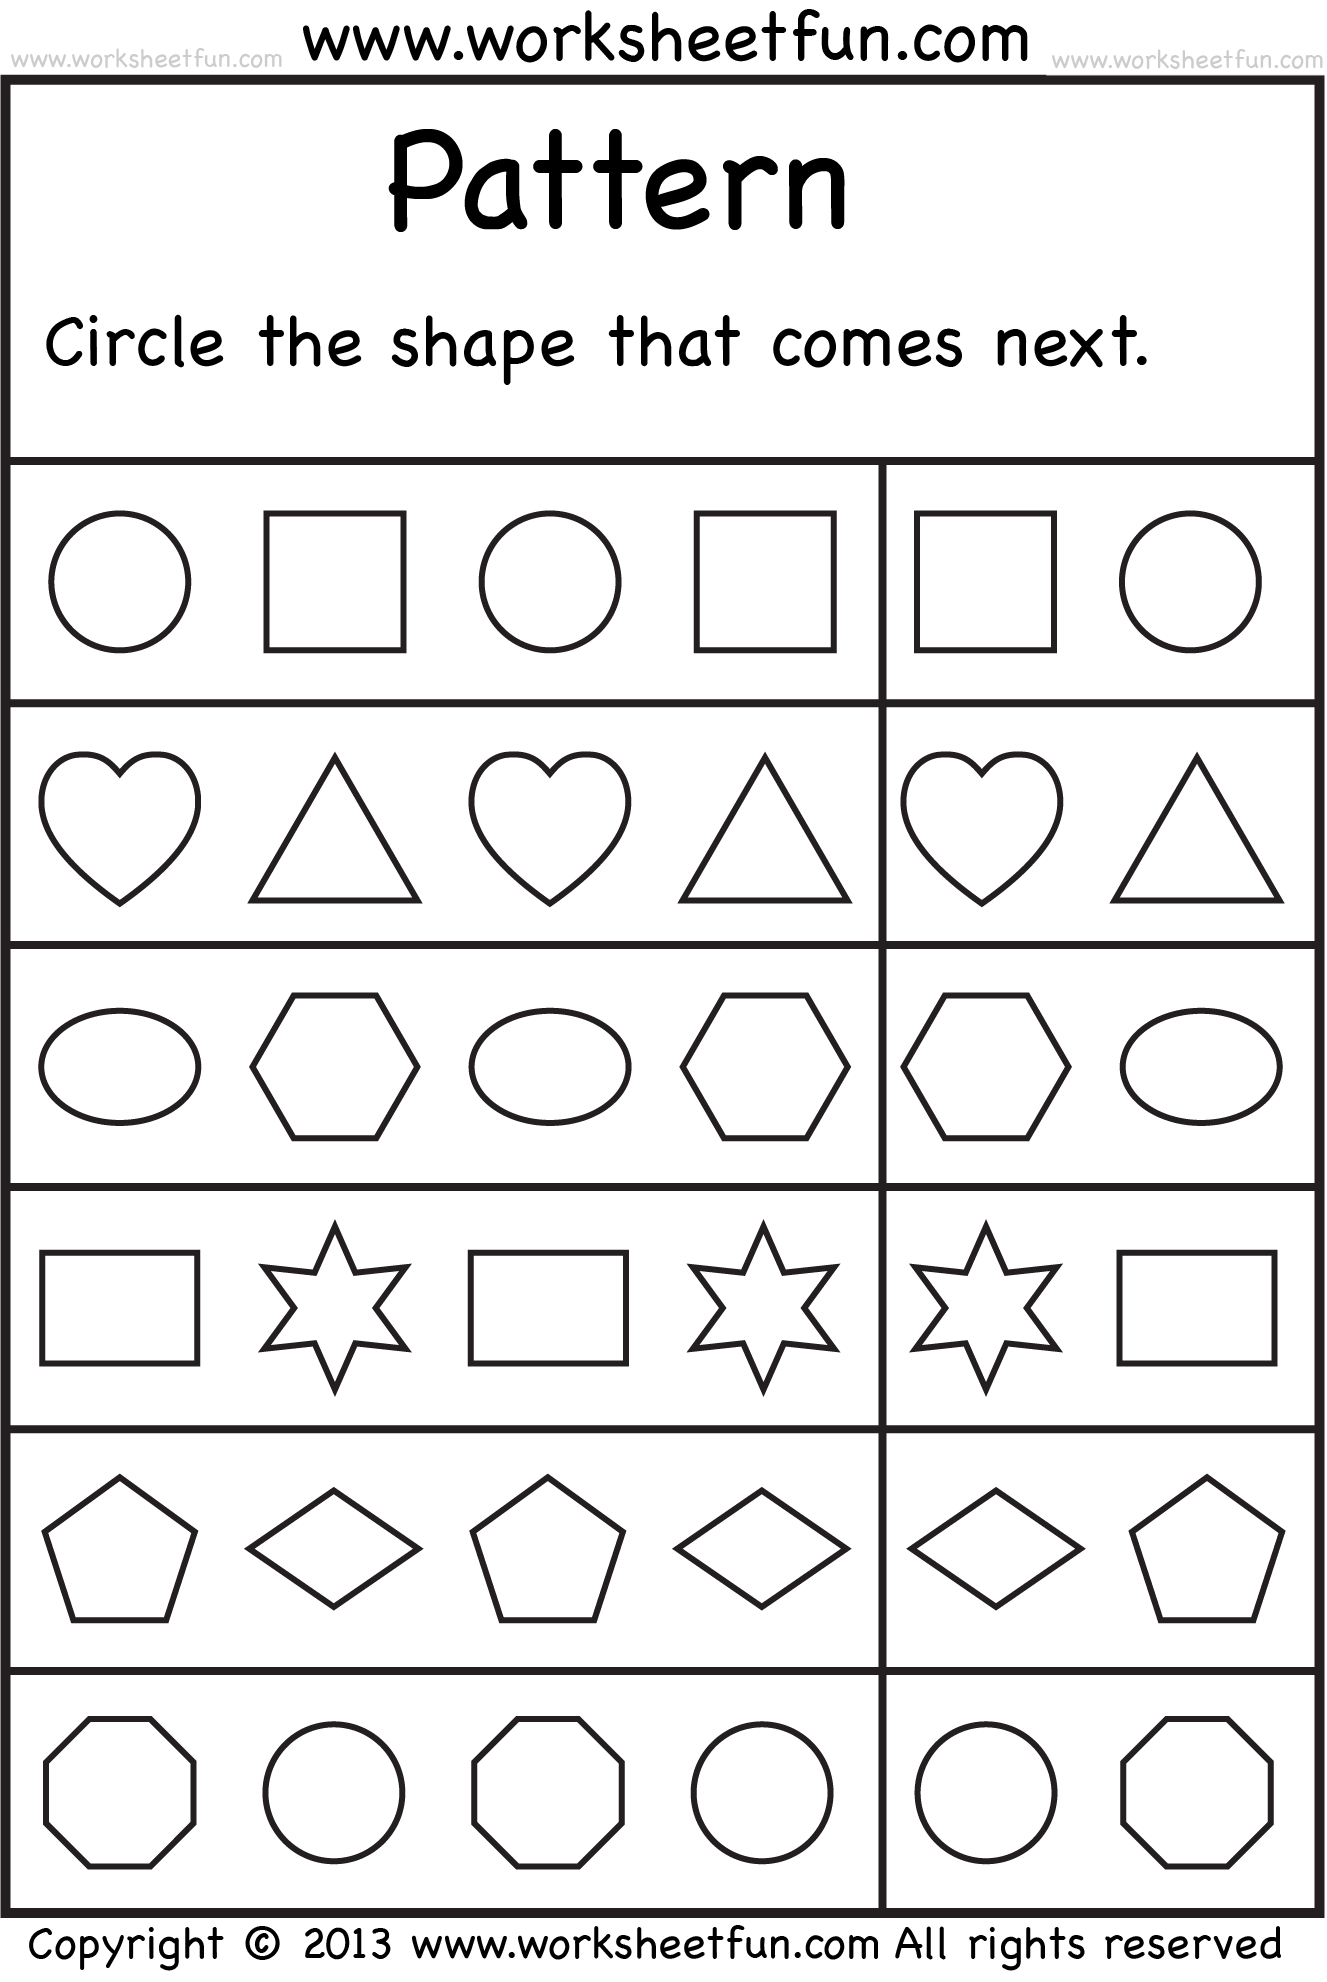 Weirdmailus  Stunning  Images About School Worksheets On Pinterest  Number Words  With Magnificent  Images About School Worksheets On Pinterest  Number Words Alphabet Worksheets And Free Printable Kindergarten Worksheets With Extraordinary Worksheet On Chemical Vs Physical Properties And Changes Answers Also Cut And Paste Worksheets For First Grade In Addition Shopping Worksheets And Order Of Operations Worksheets Th Grade As Well As Simplifying Cube Roots Worksheet Additionally Irs Capital Loss Carryover Worksheet From Pinterestcom With Weirdmailus  Magnificent  Images About School Worksheets On Pinterest  Number Words  With Extraordinary  Images About School Worksheets On Pinterest  Number Words Alphabet Worksheets And Free Printable Kindergarten Worksheets And Stunning Worksheet On Chemical Vs Physical Properties And Changes Answers Also Cut And Paste Worksheets For First Grade In Addition Shopping Worksheets From Pinterestcom